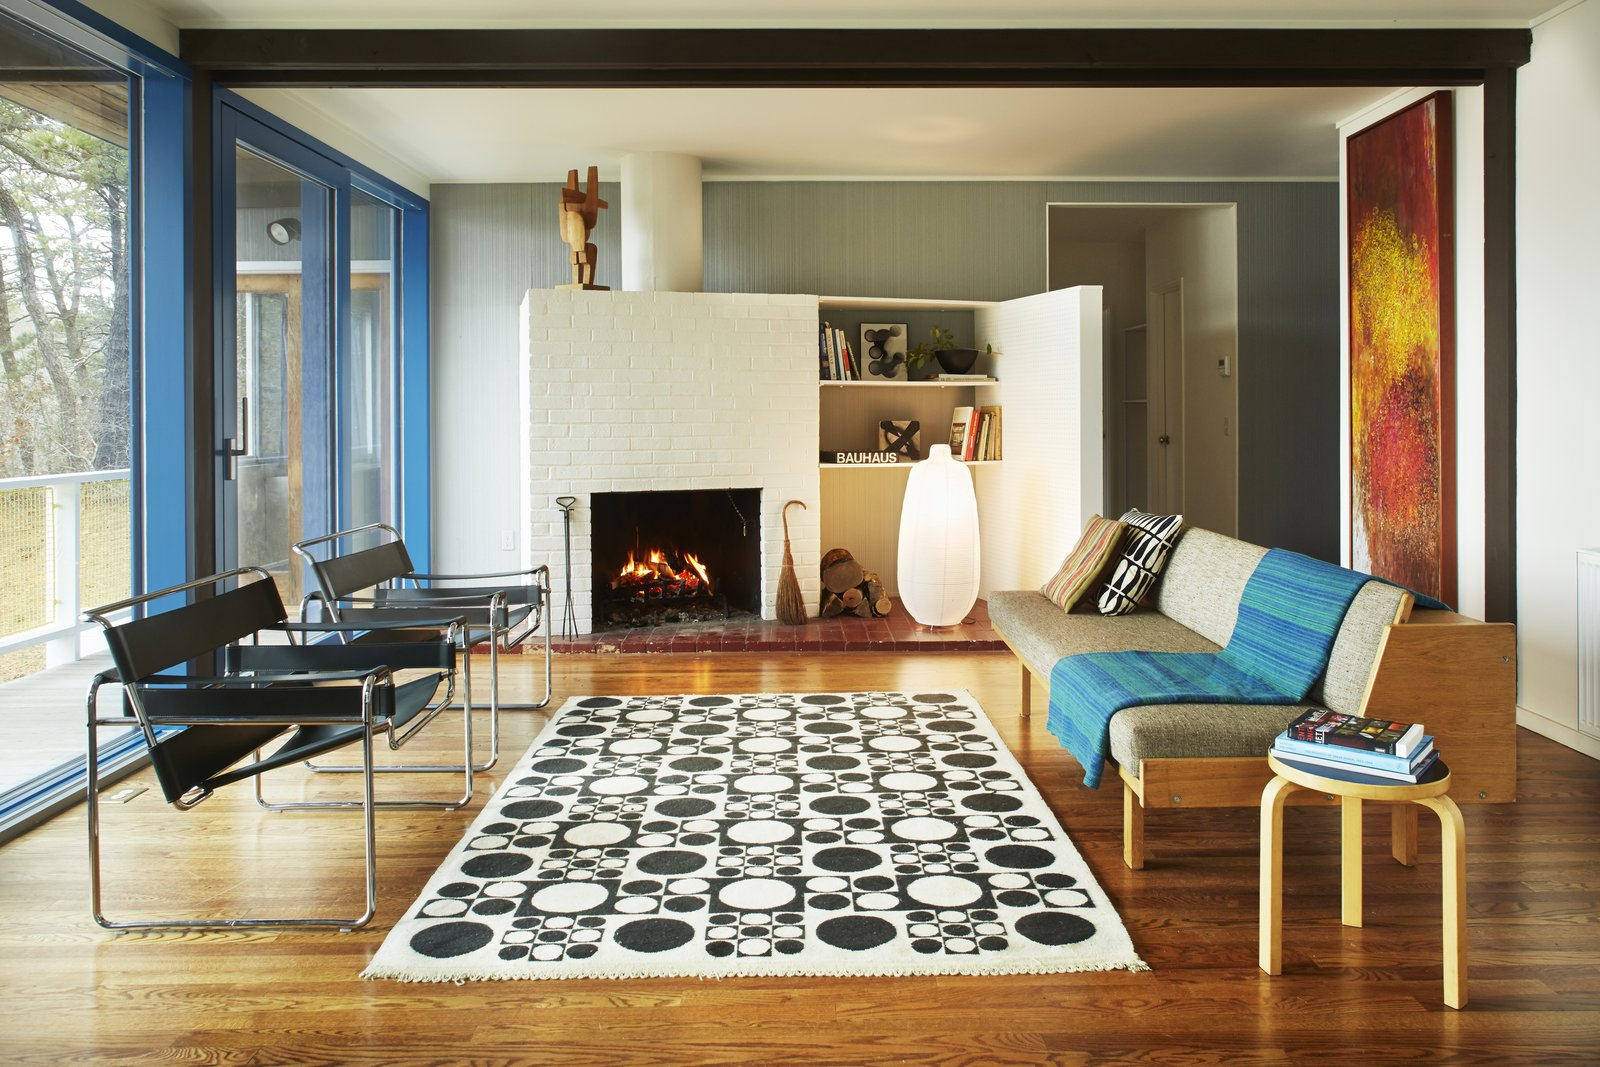 Living Room, Stools, Chair, Sofa, Shelves, Floor Lighting, Medium Hardwood Floor, Rug Floor, Standard Layout Fireplace, and Wood Burning Fireplace  Photo 1 of 9 in Experience Cape Cod Modern by Staying at the Midcentury Weidlinger House